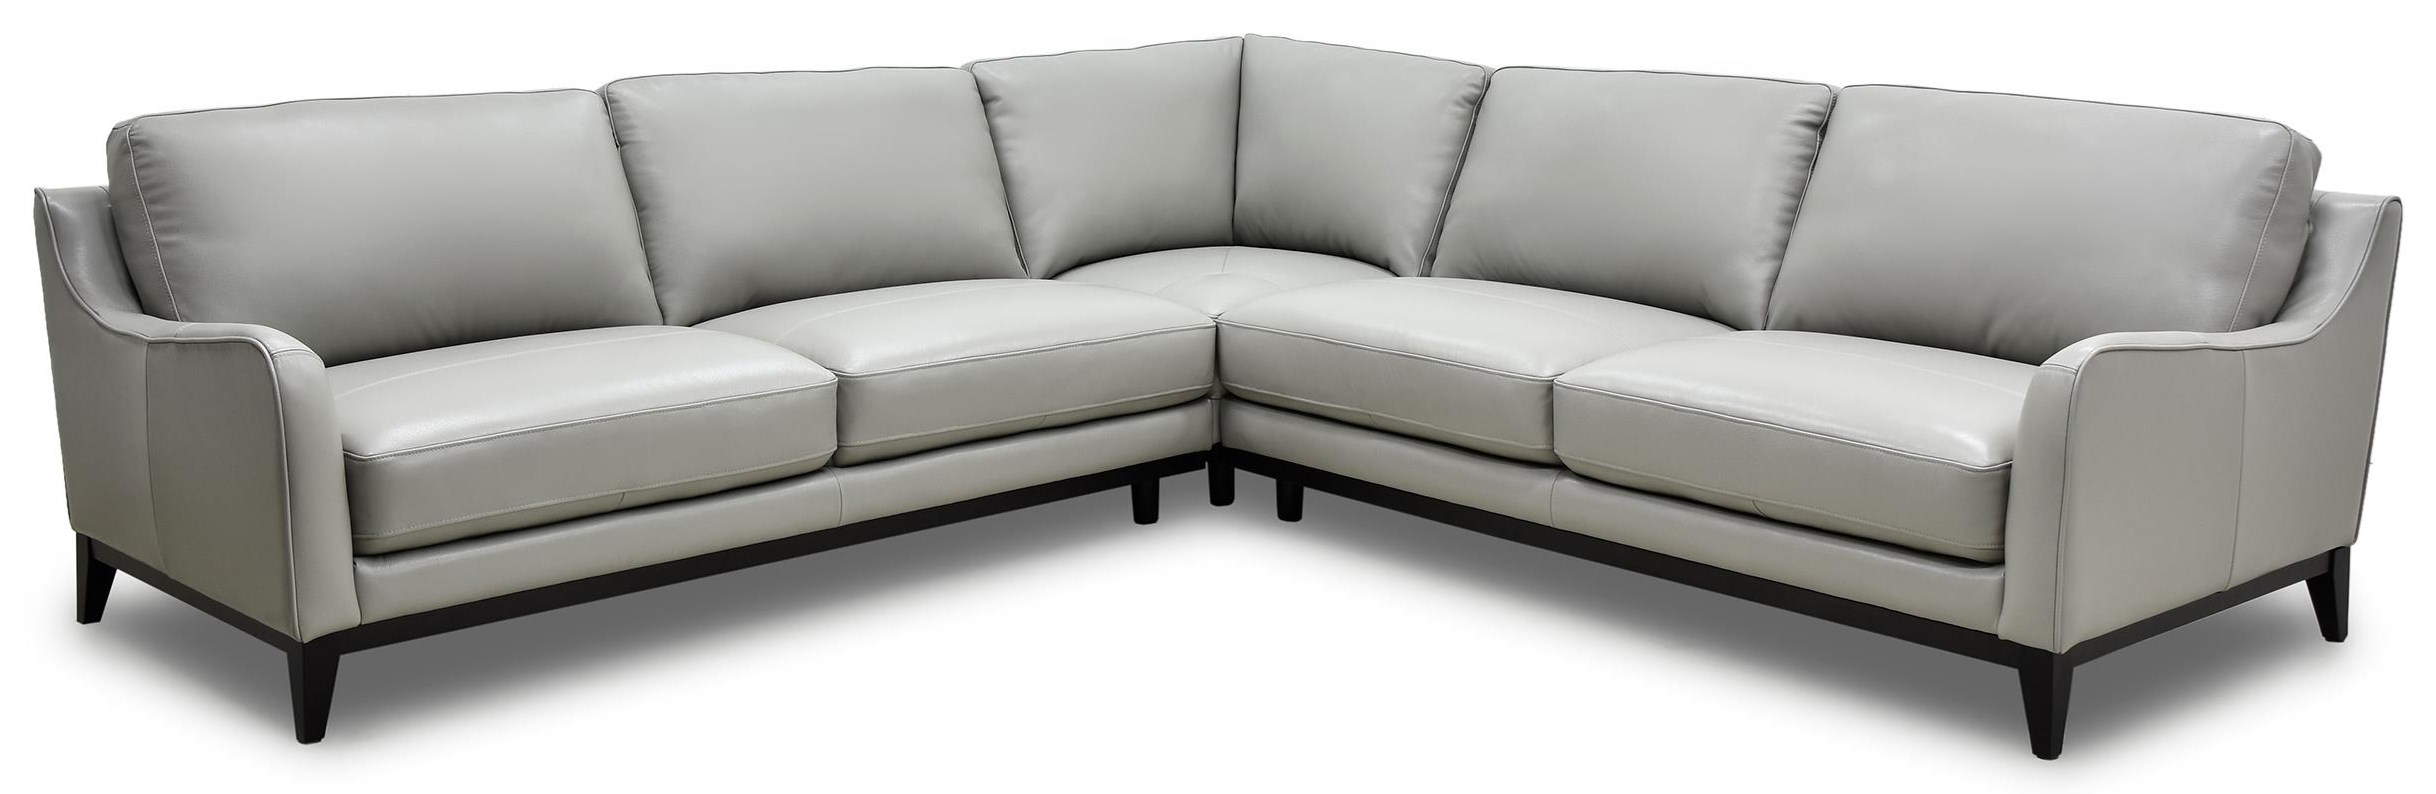 Bozeman 3PC Leather Sectional at Rotmans